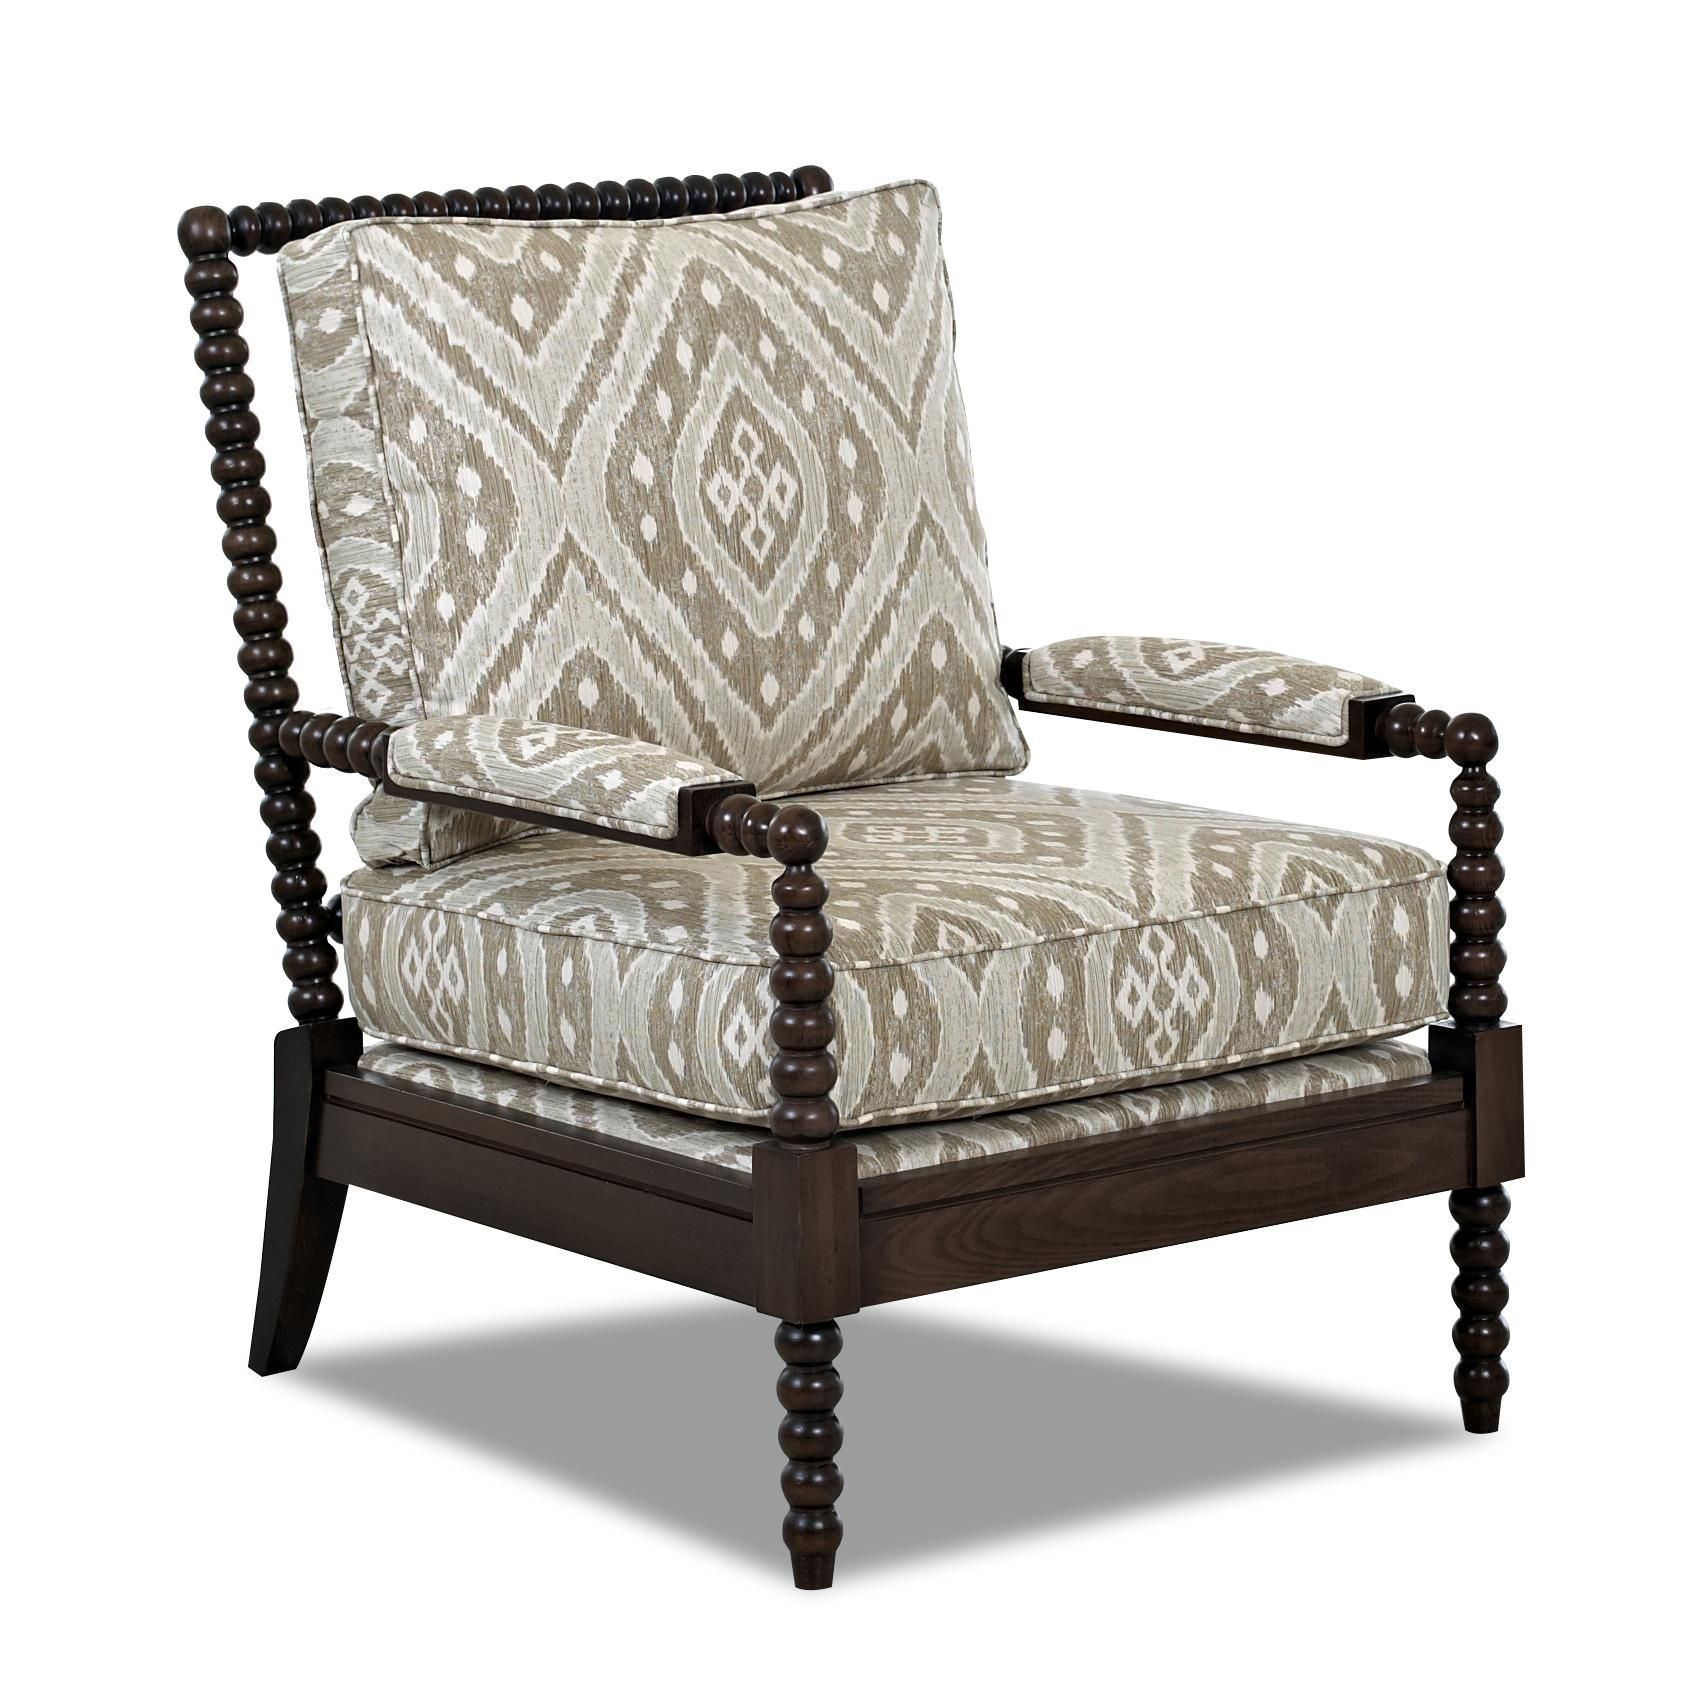 Chairs And Accents Rocco Accent Chair With Spool Turned